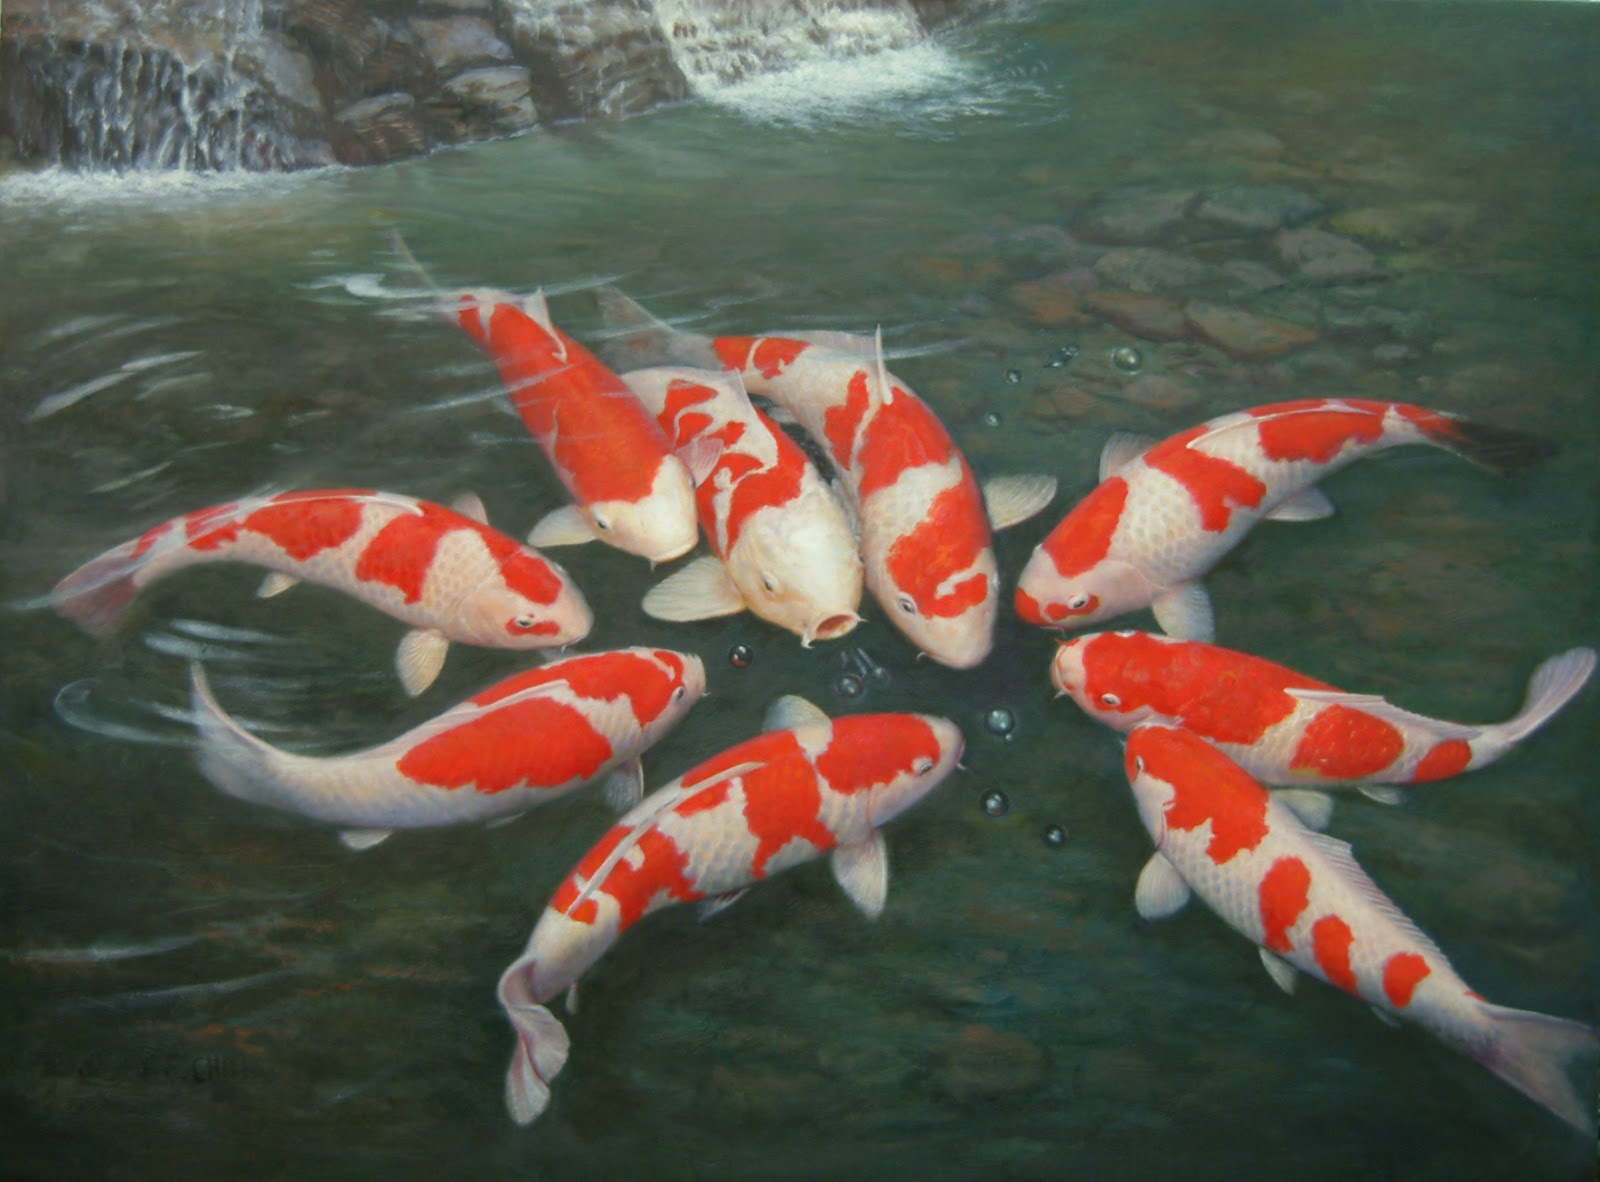 Koi aquarium fish koi koi koi la de koi coy koi koi fish for Live to fish